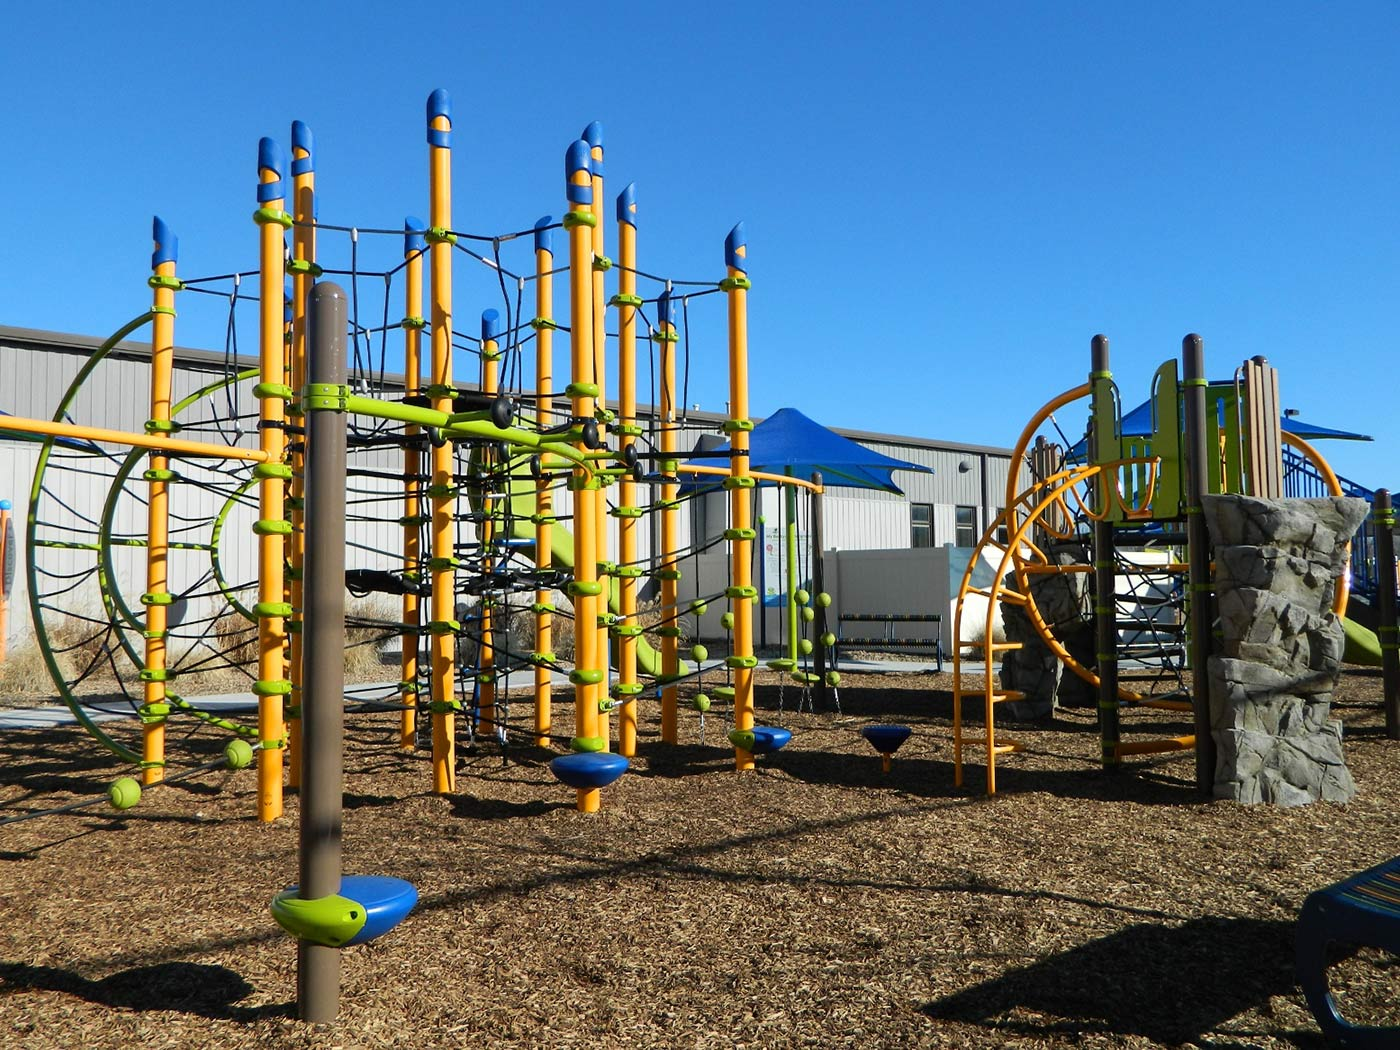 Fair-Play Playground